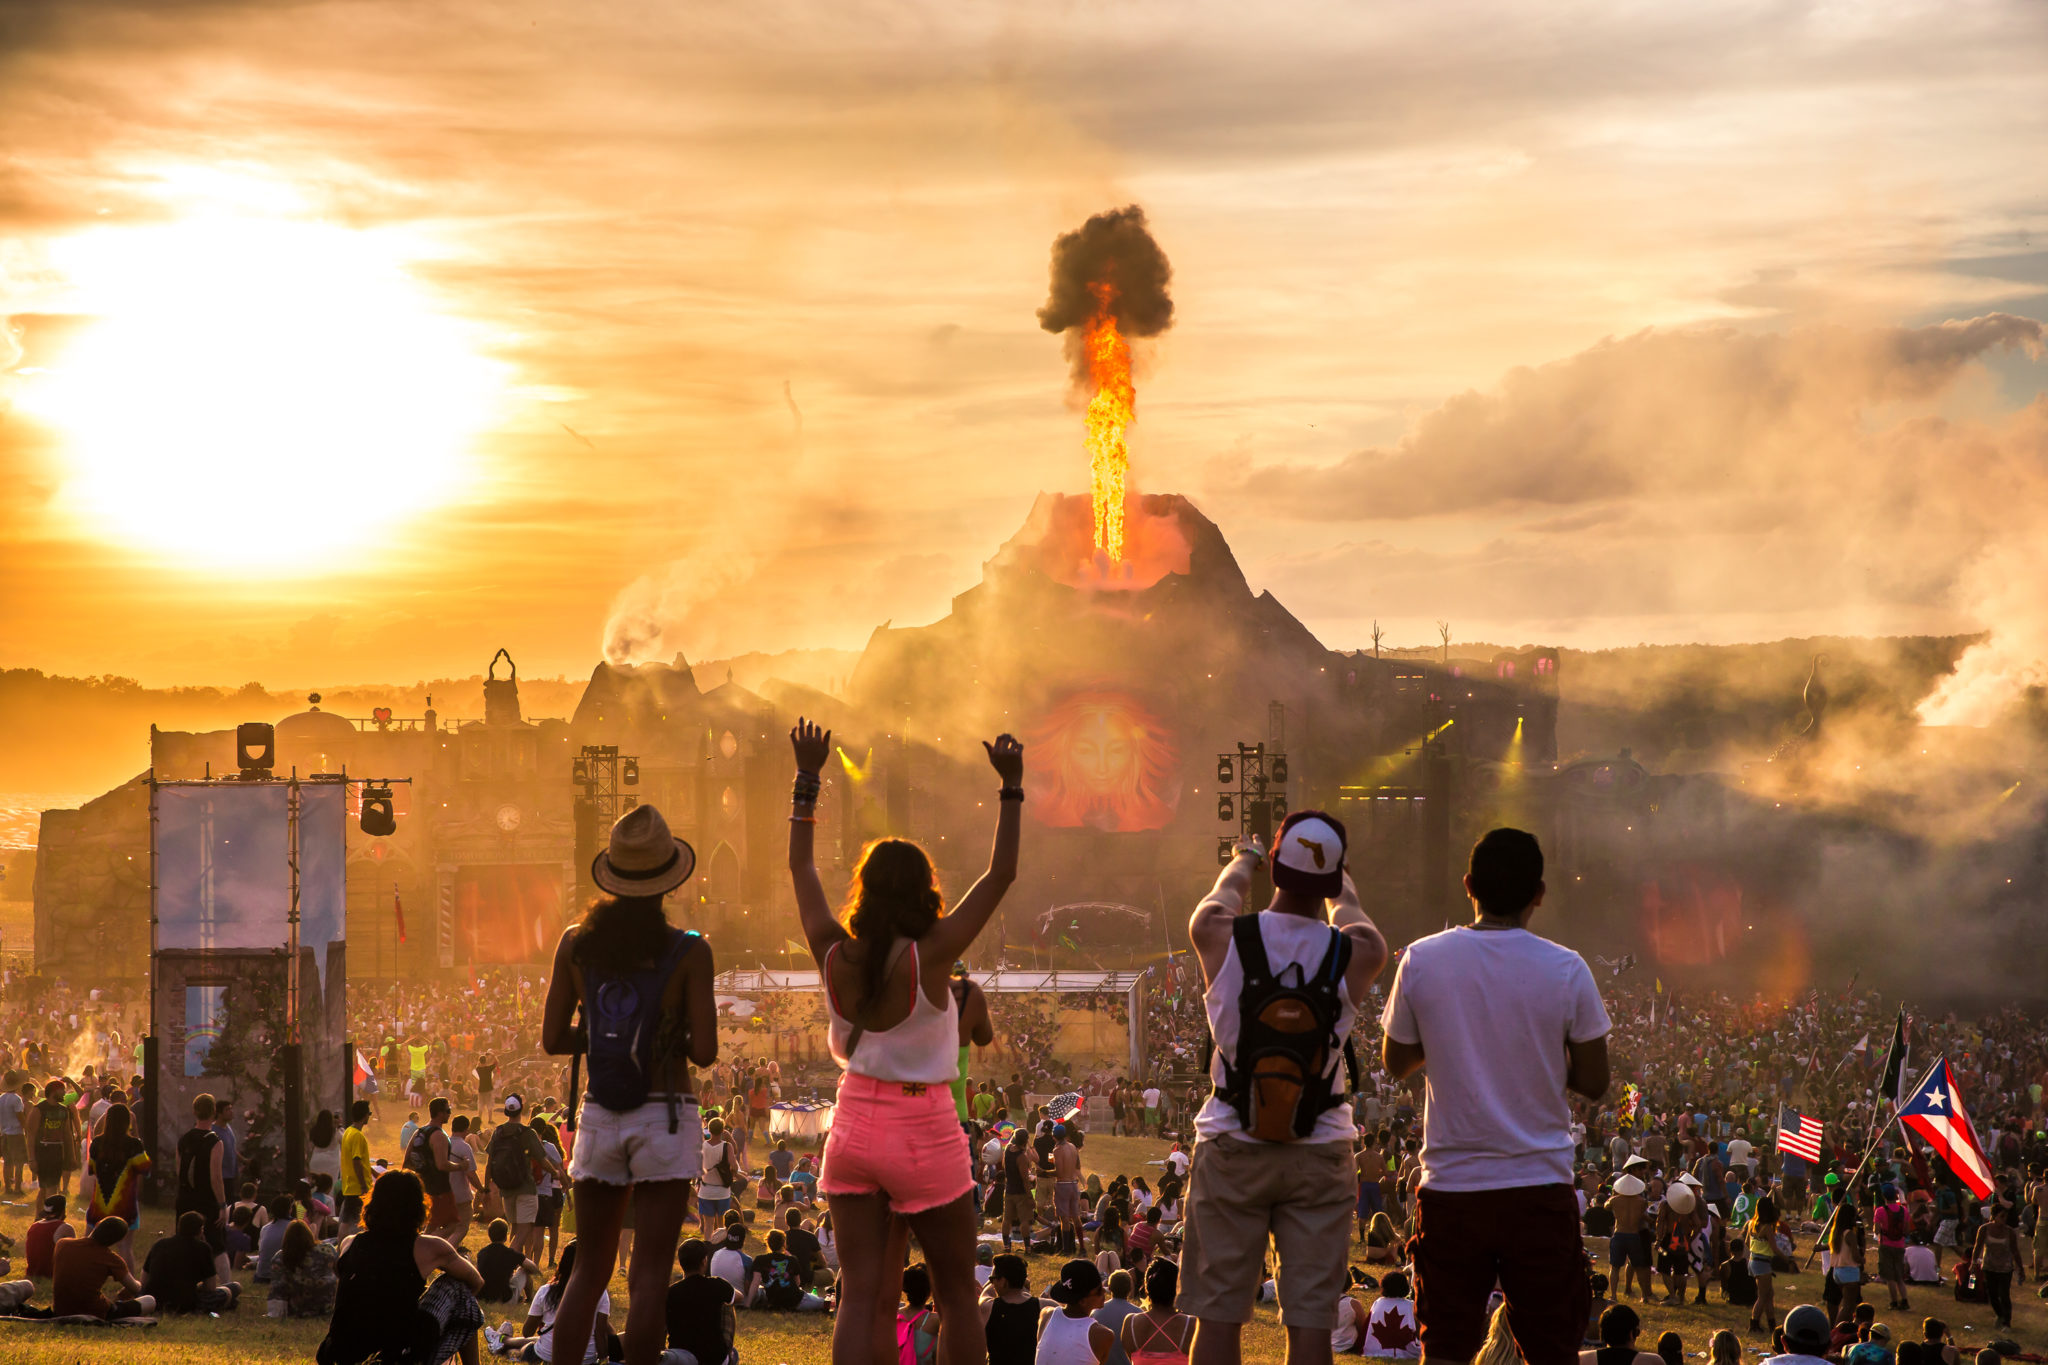 Tomorrowworld acontece neste final de semana em Atlanta Atlanta, The Key to Happiness, tomorrowworld